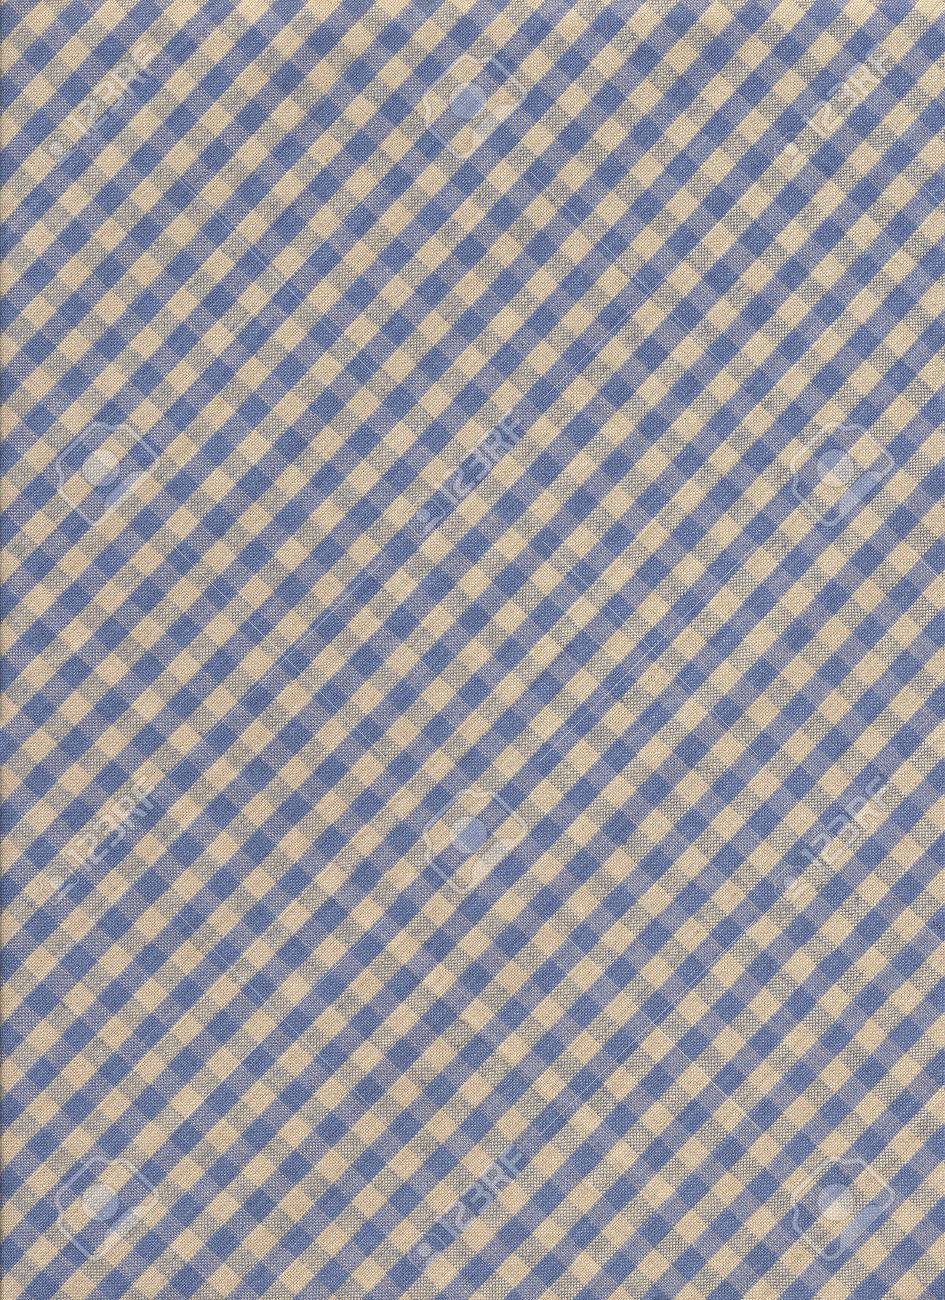 Blue and gray diagonal checkered tablecloth textile background Stock Photo - 24196429